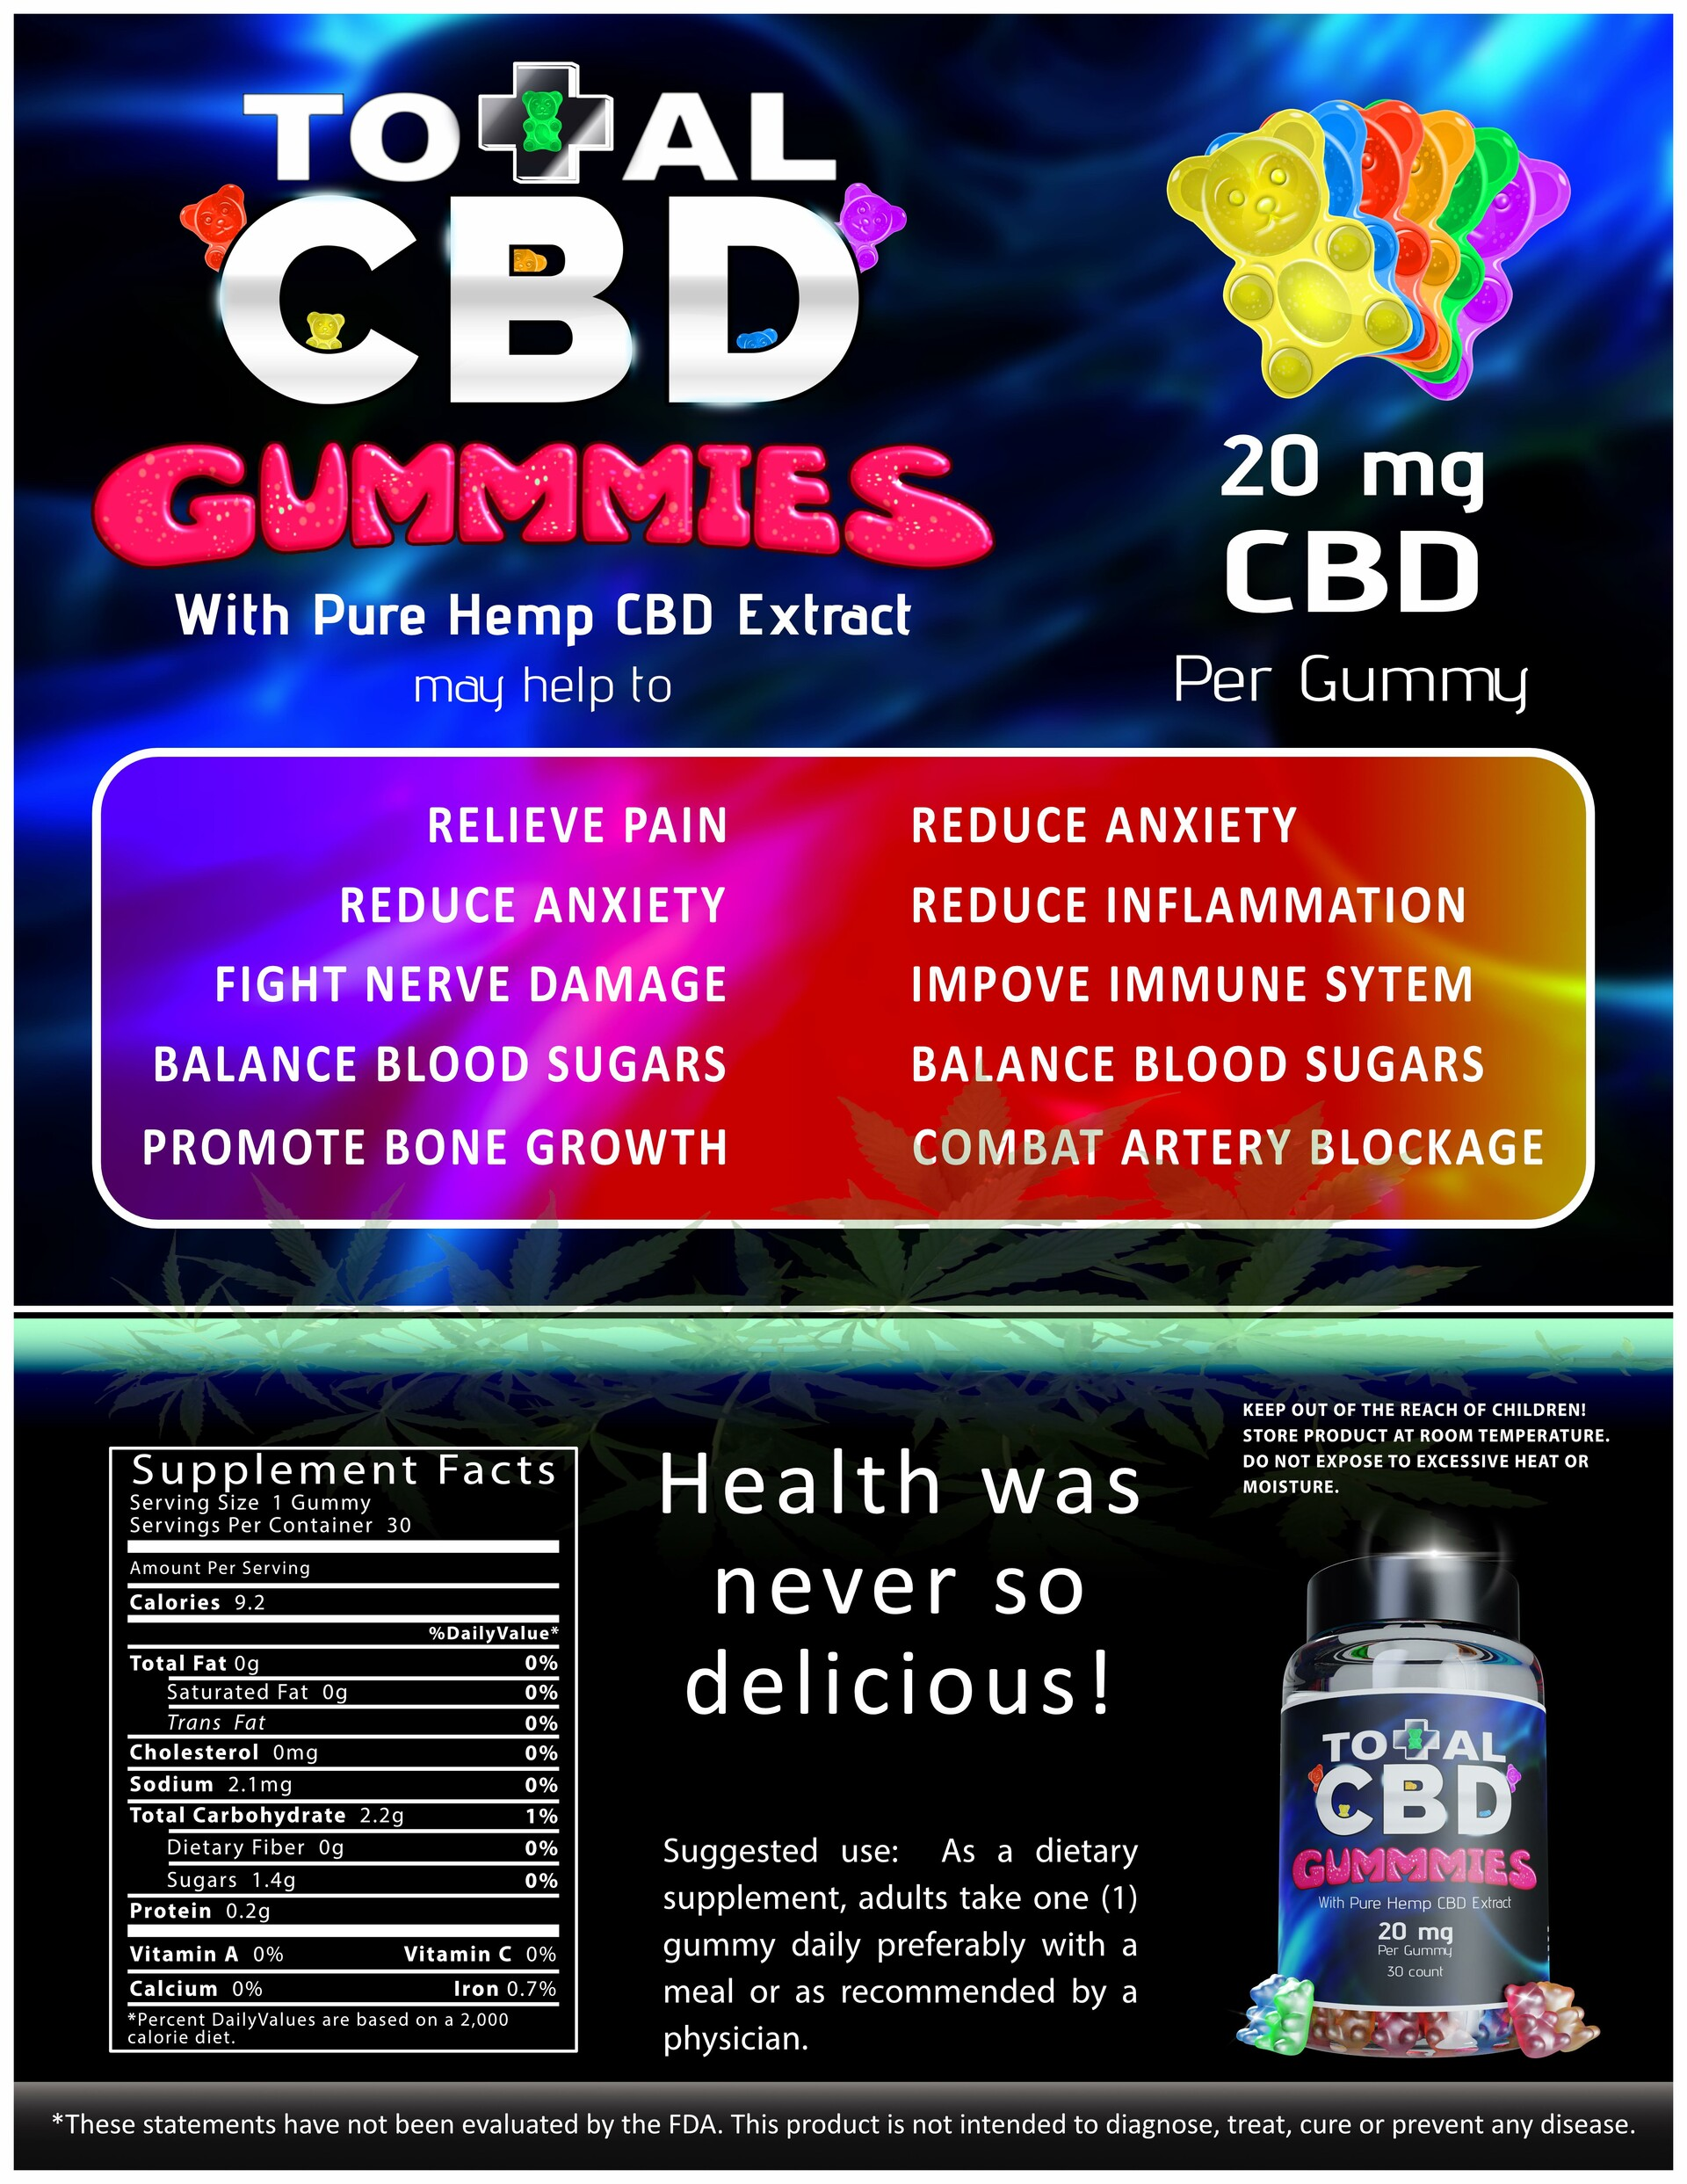 CBD Line. Conceived, designed, rendered, and officially launched product by myself.